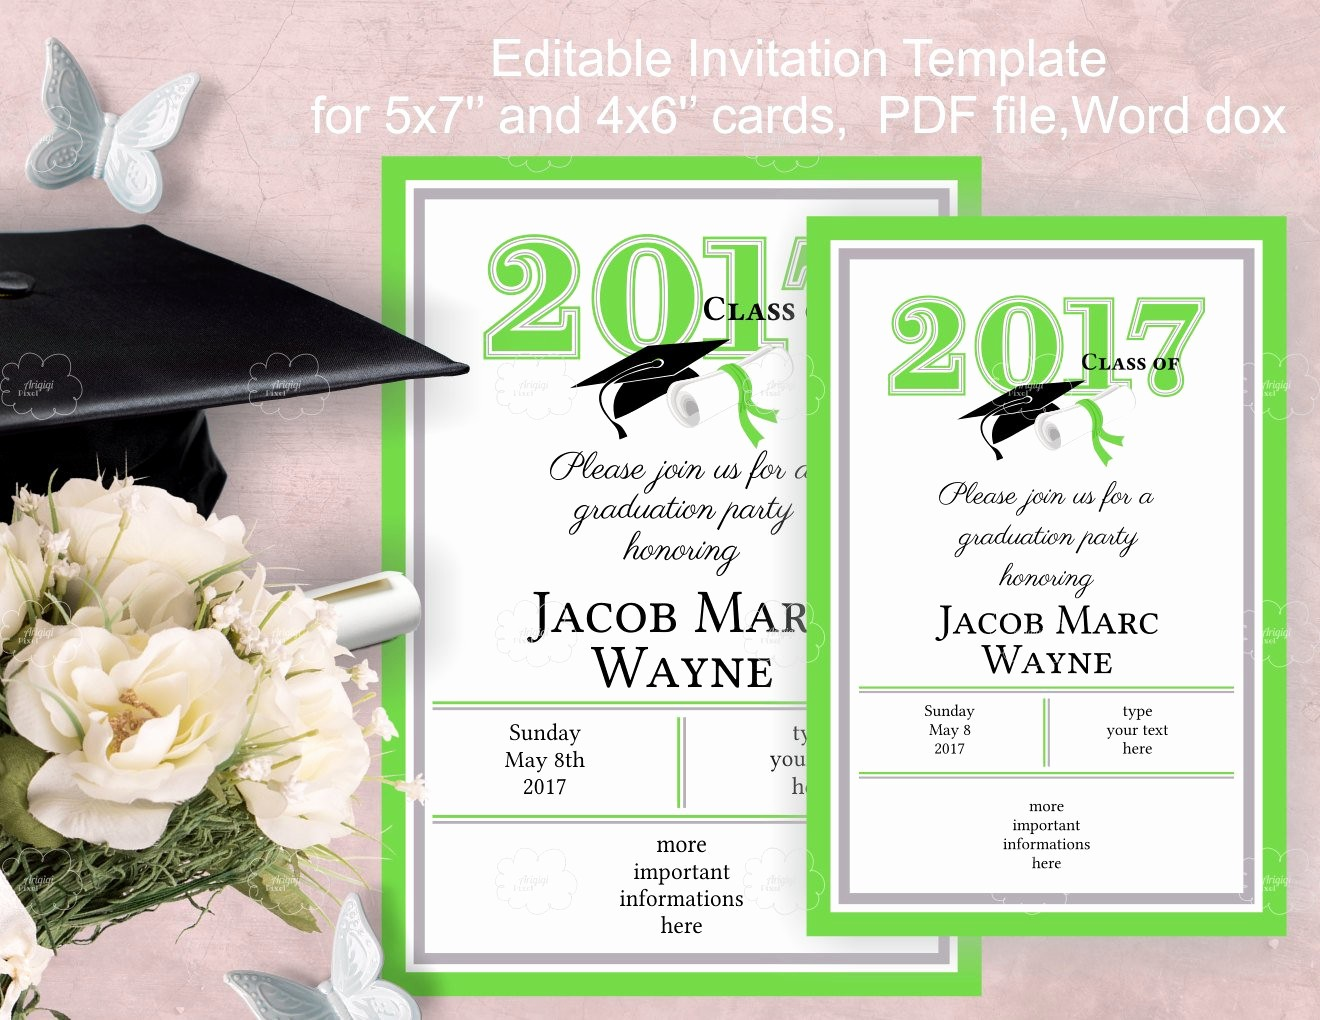 Graduation Party Invitation Template Word Beautiful Graduation Party Invitation Template Edit Yourself